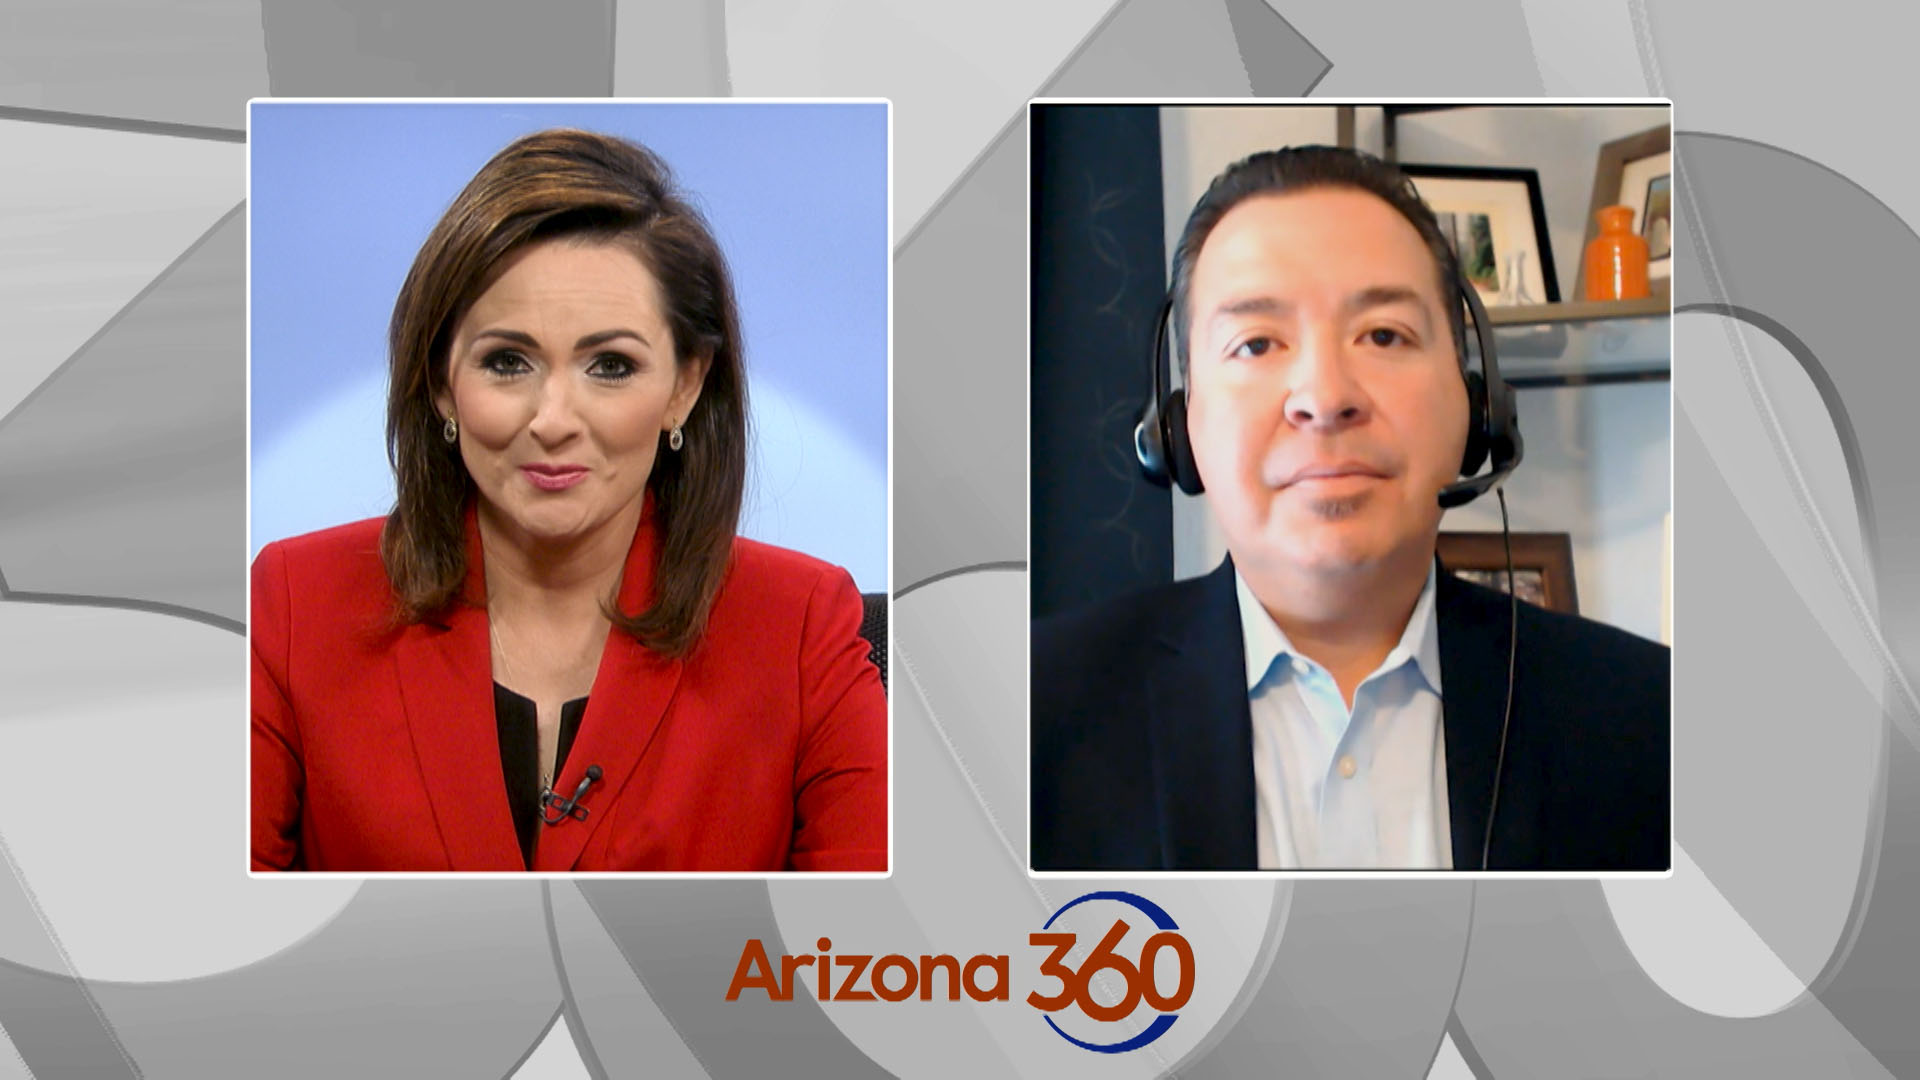 Lorraine Rivera and J.J. Rico, the executive director of the [Arizona Center for Disability Law, discuss the Americans with Disabilities Act of 1990 among other challenges for people with disabilities during the pandemic on Arizona 360.